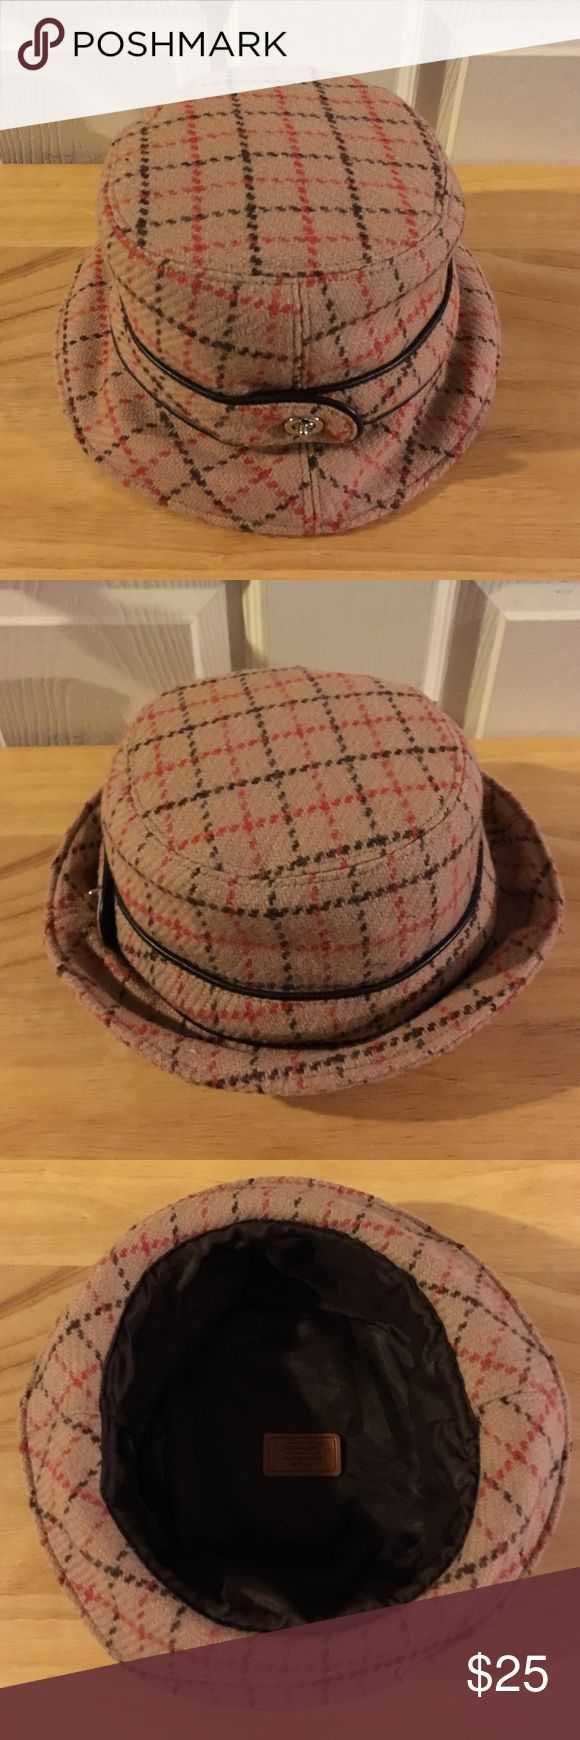 COACH HAT COACH Wool bucket hat. Silver tone turn lock on side. Brown nylon lining. Size P/S. Tan plaid pattern. Band around Hat has brown leather on it. Like new🌸 Coach Accessories Hats